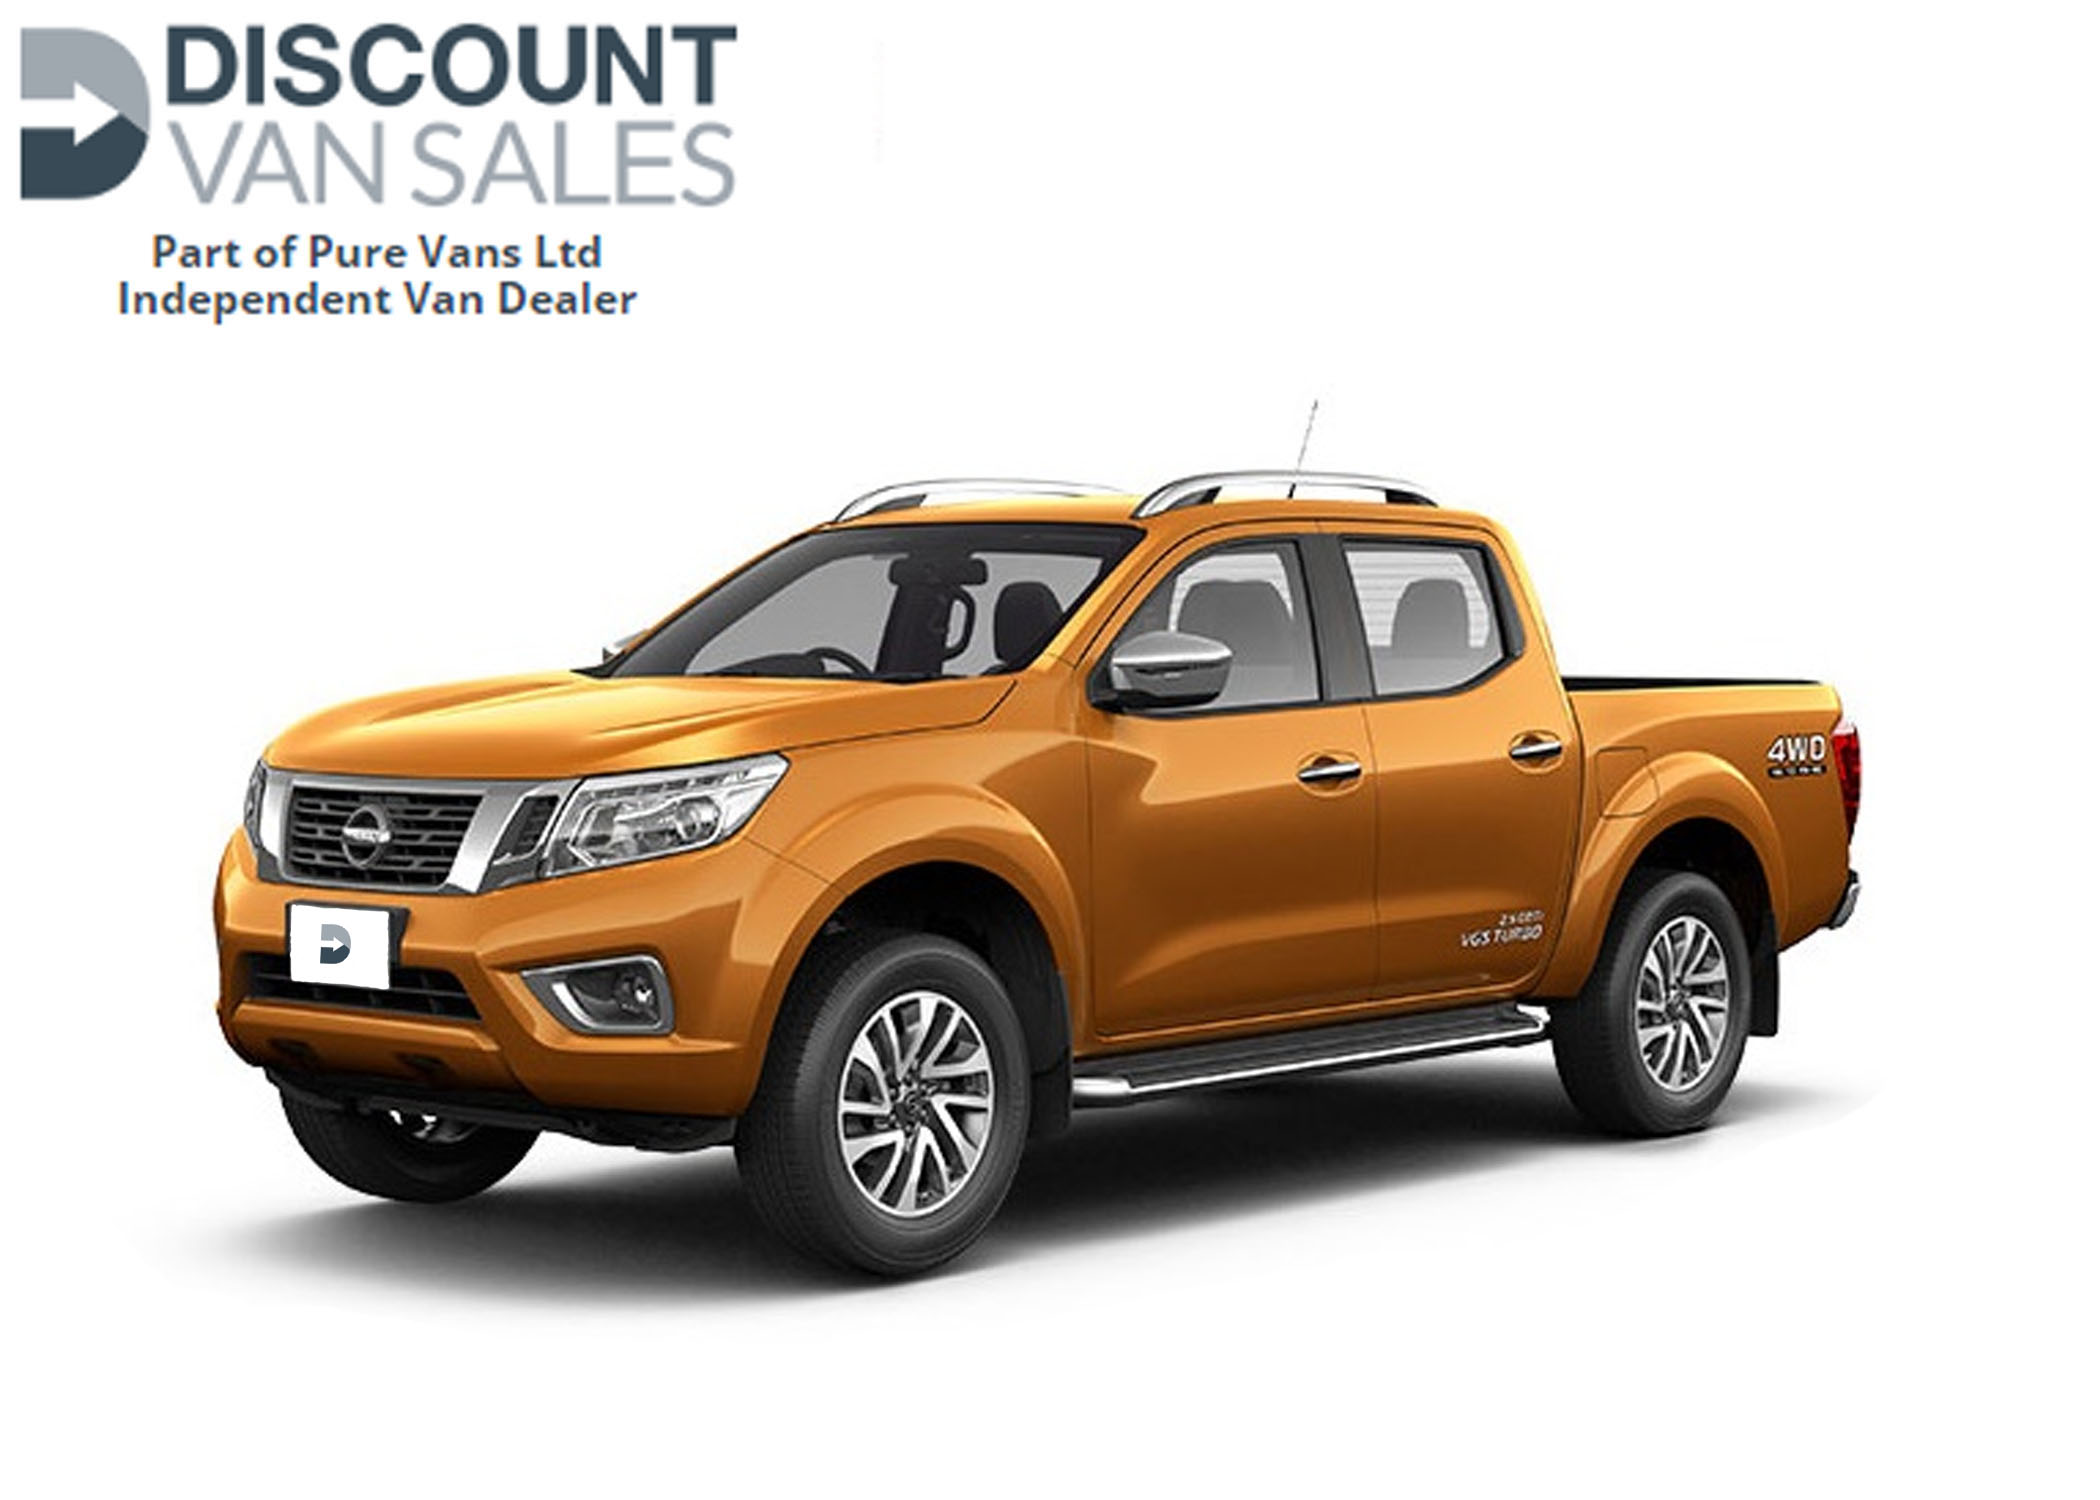 NISSAN NAVARA 2.3 DCI 190 4WD DOUBLE CAB TEKNA front.jpg